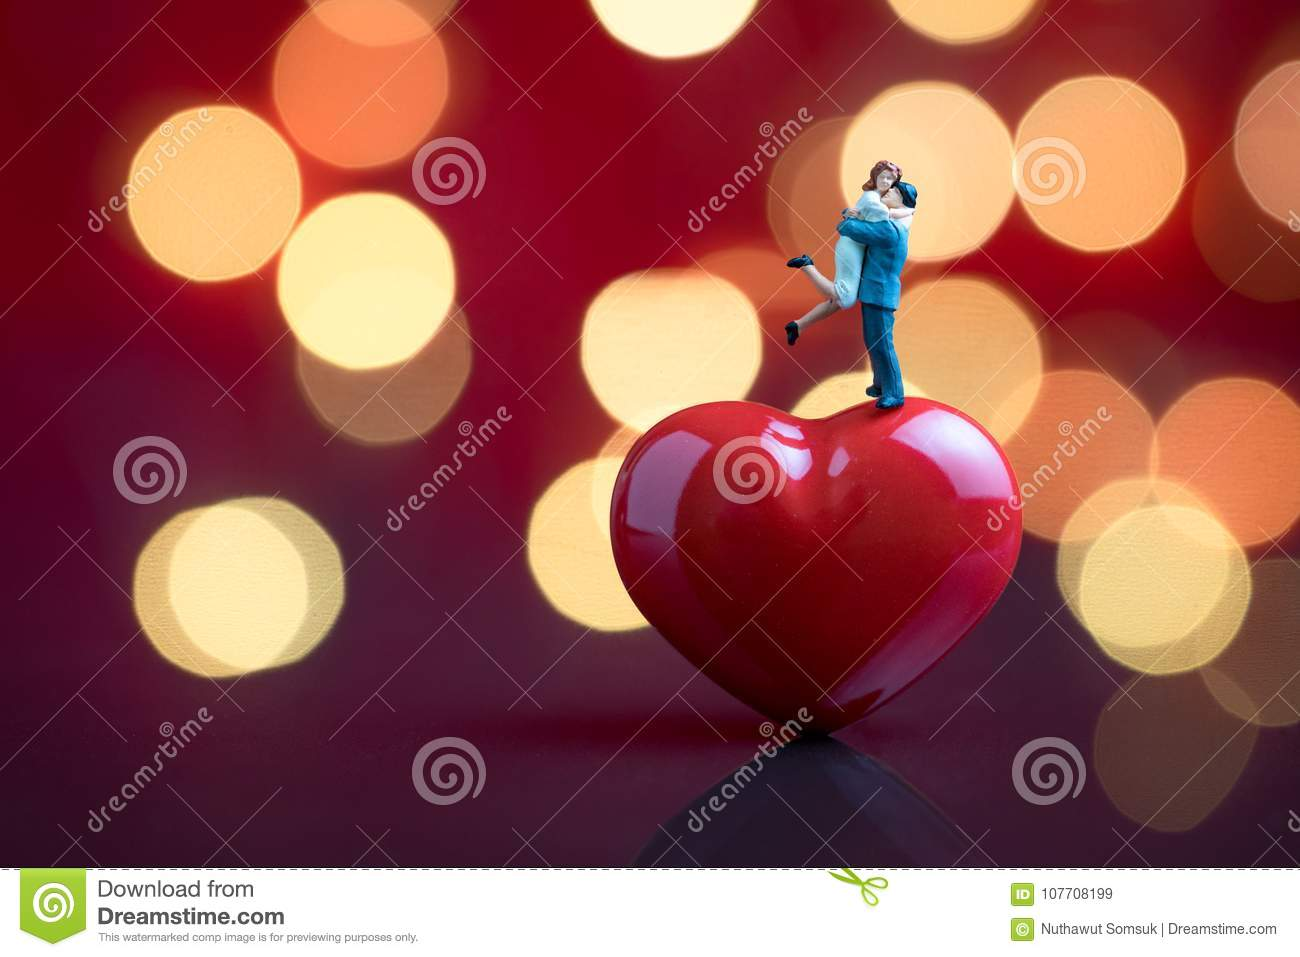 Valentines card or wallpaper with sweet miniature couple standing on red heart shape with red background and beautiful bokeh